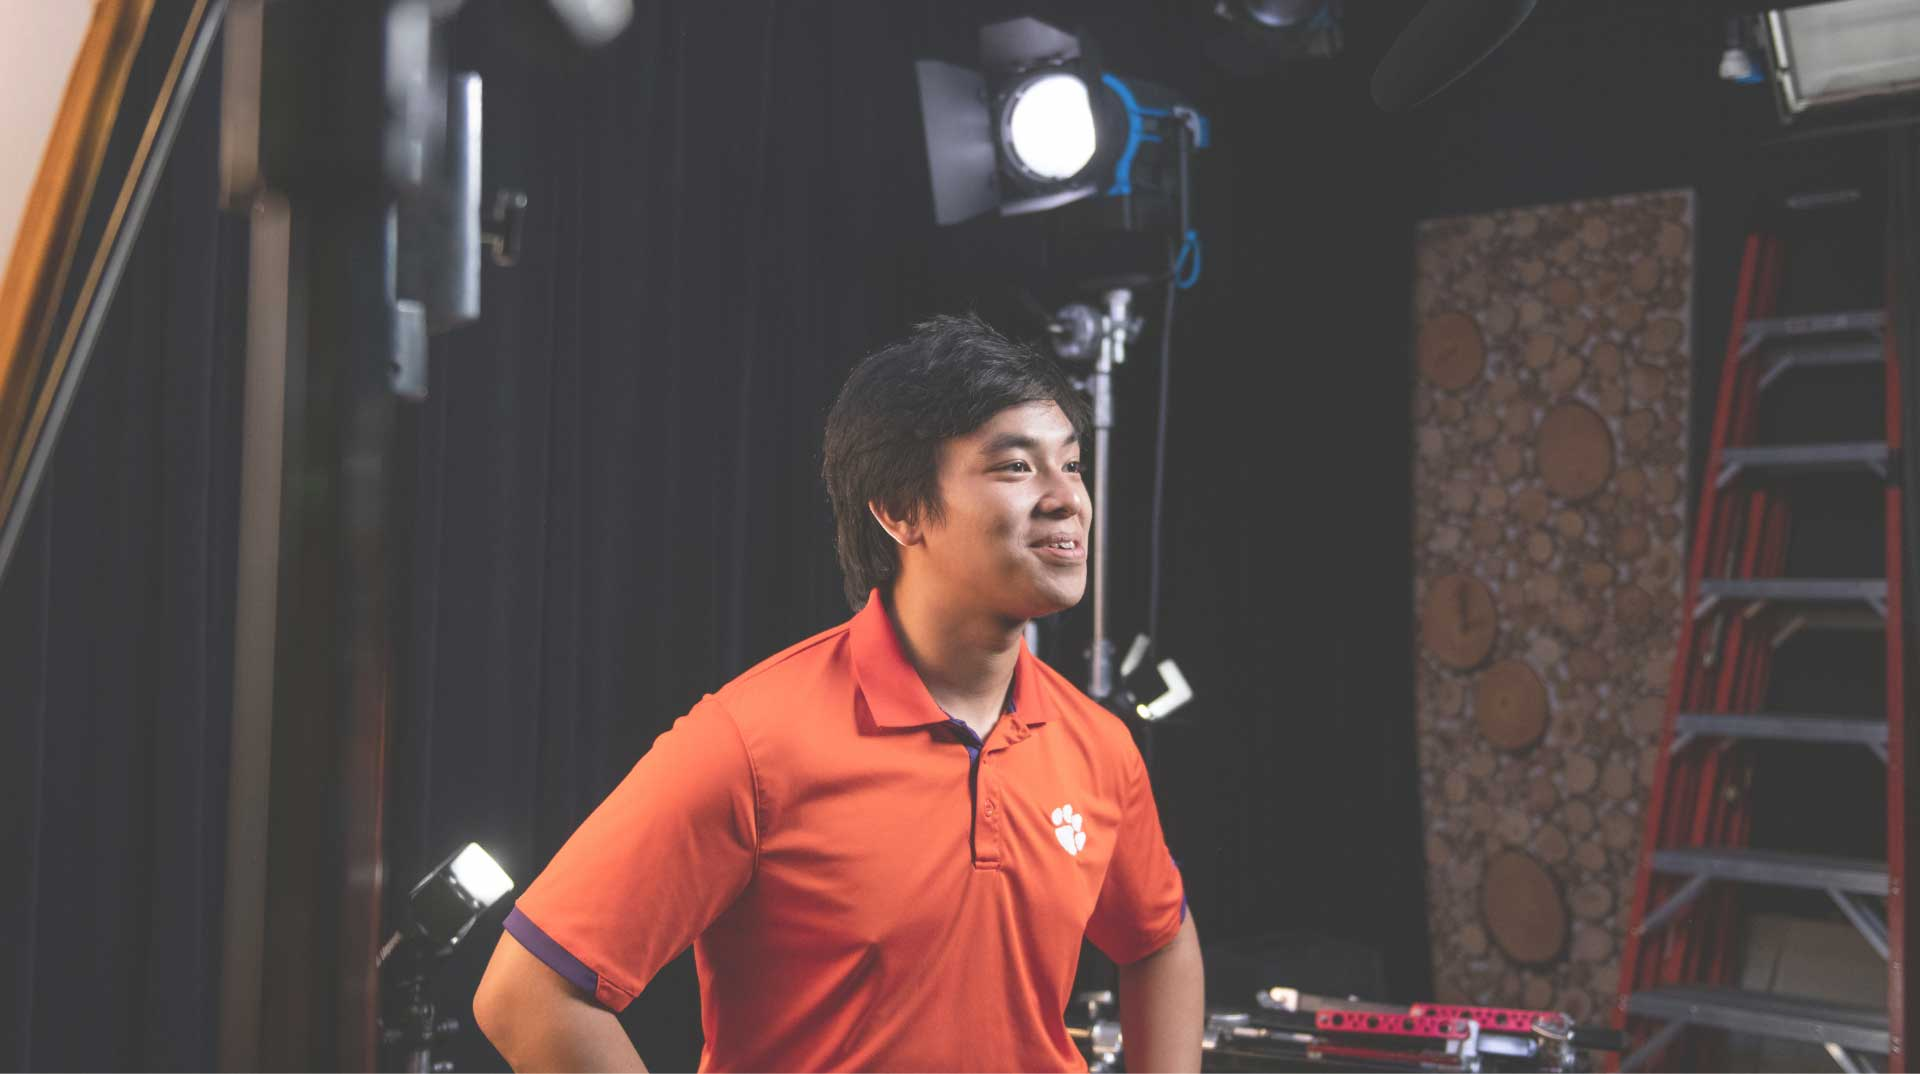 Nam sits in a backstage video area wearing an orange Clemson polo and talking. 'Watch Nam's Story' and the play symbol hover beside him.